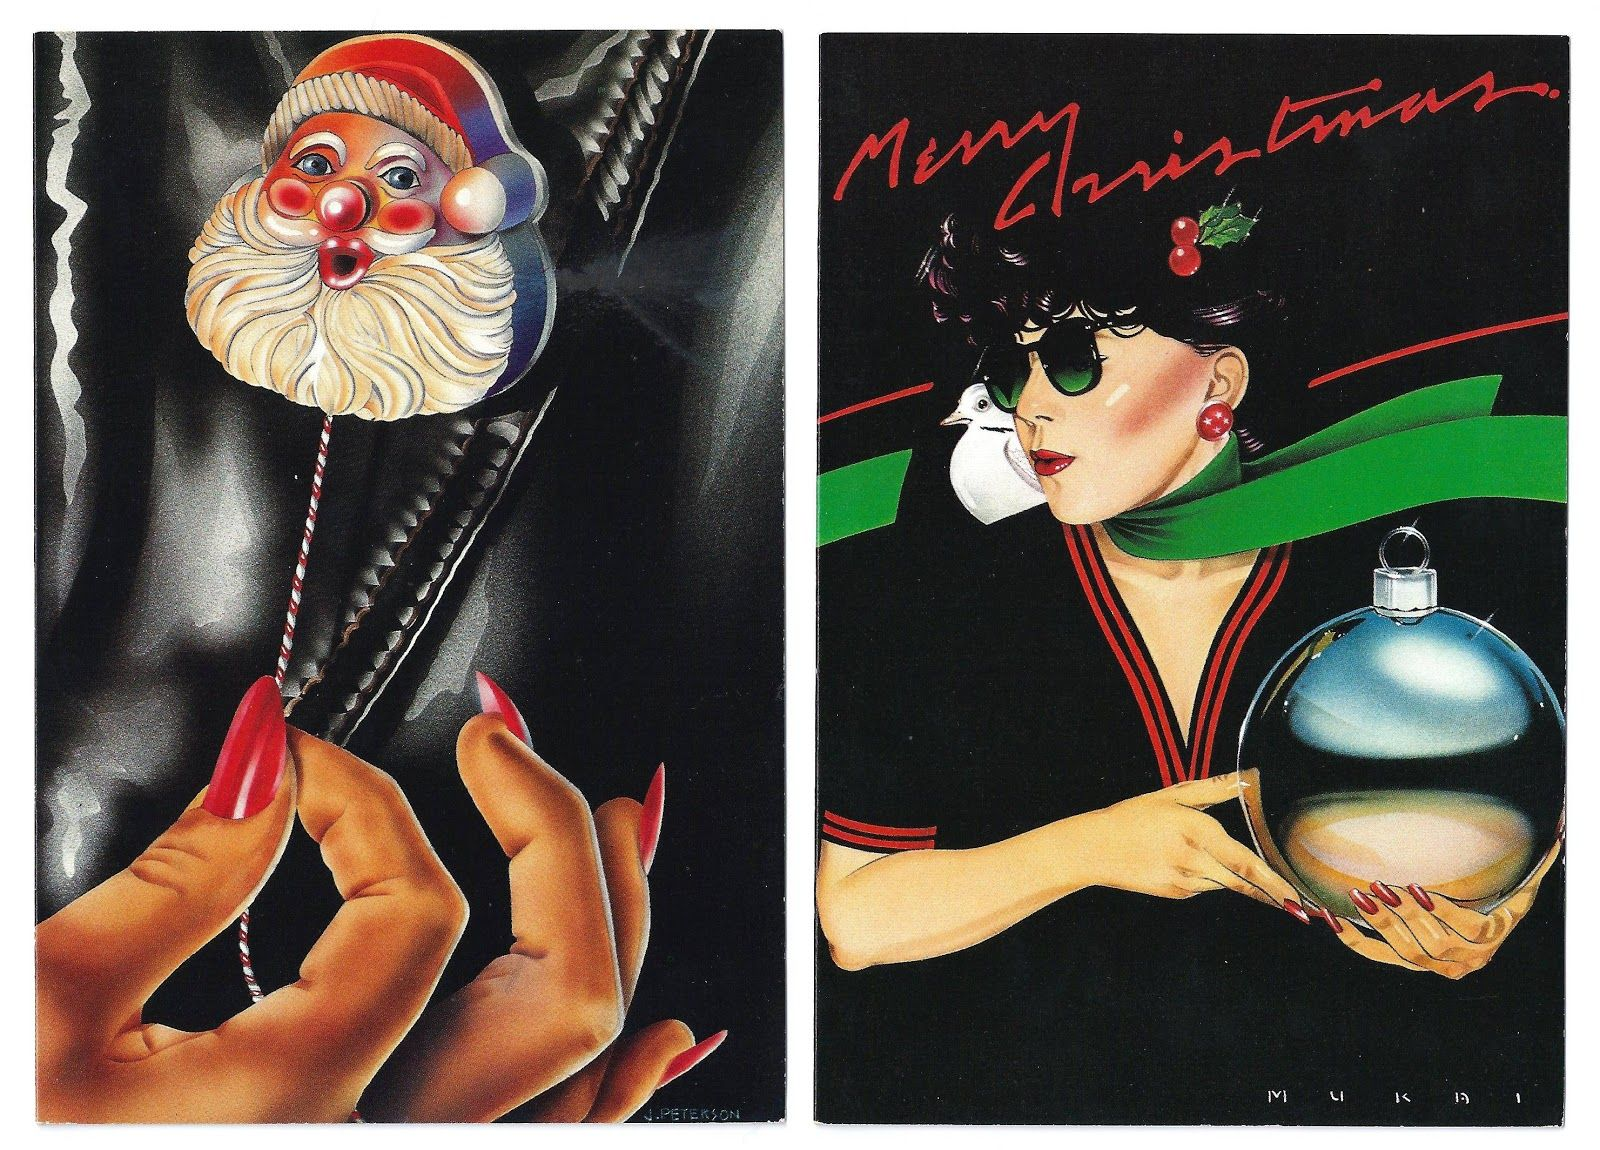 116 best paper moon graphics images on pinterest airbrush art christmas cards from paper moon graphics kristyandbryce Image collections